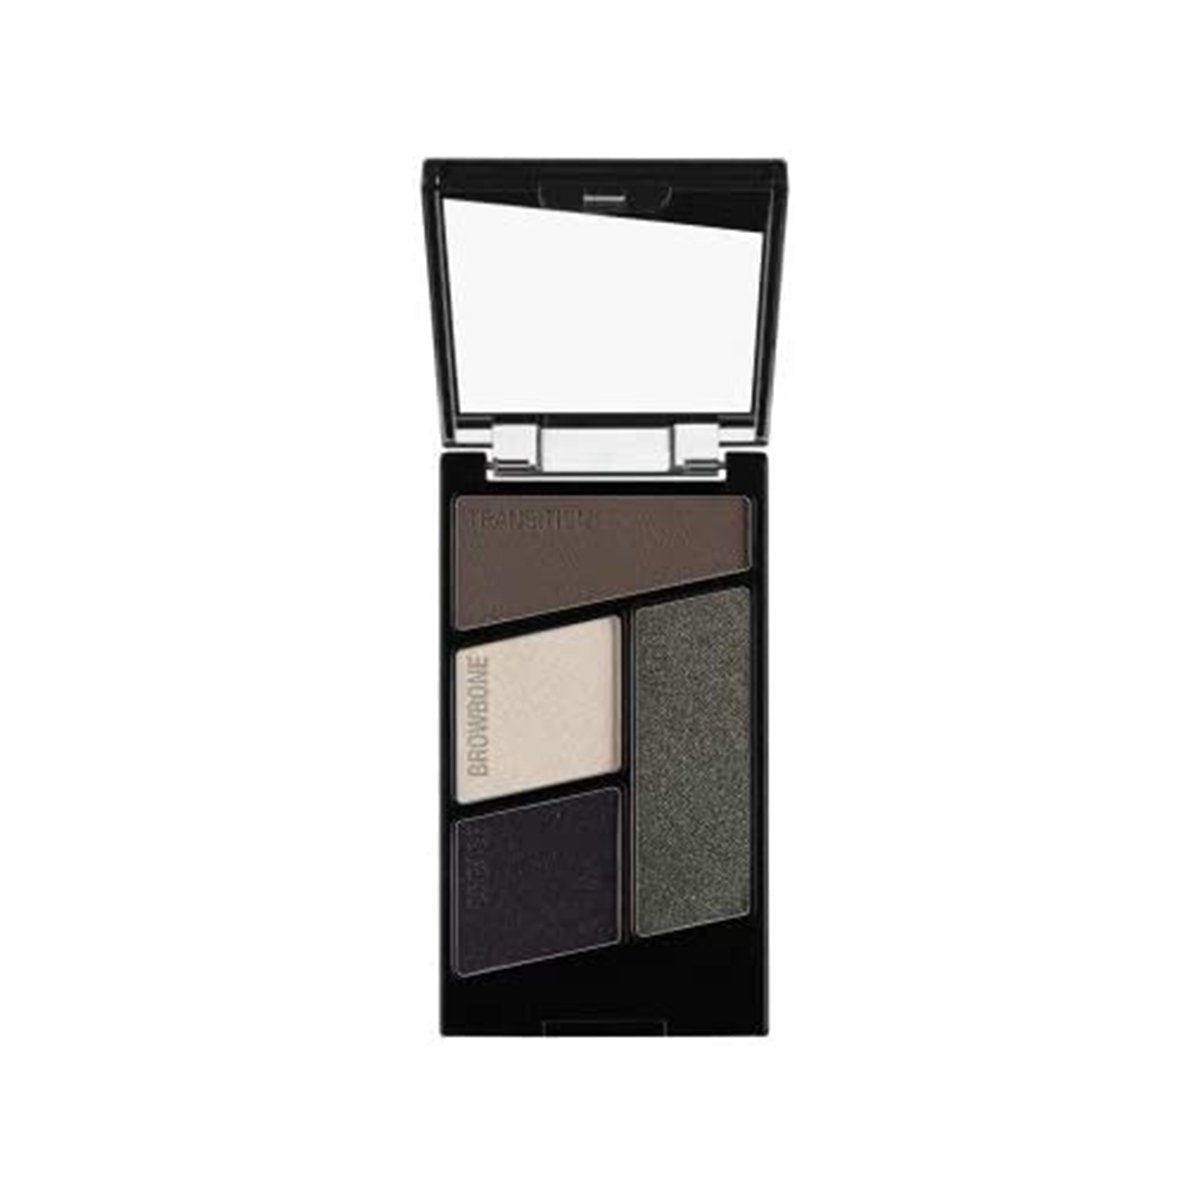 LIGHTS OUT COLOR EYESHADOW QUADS - WET N WILD